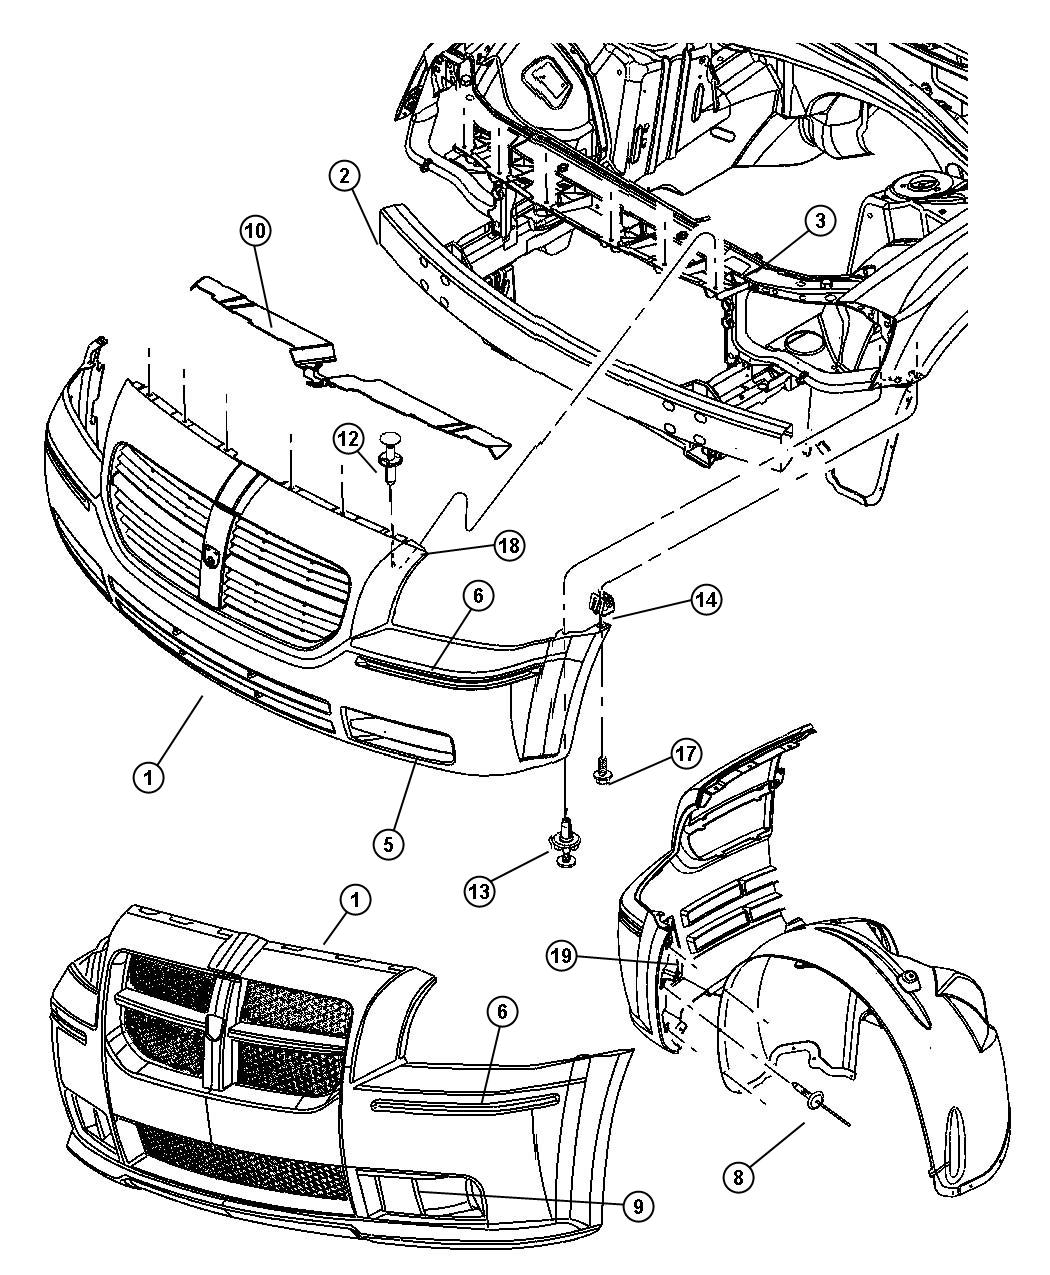 Dodge Caliber Front Bumper Diagram on wiring harness for dodge caravan